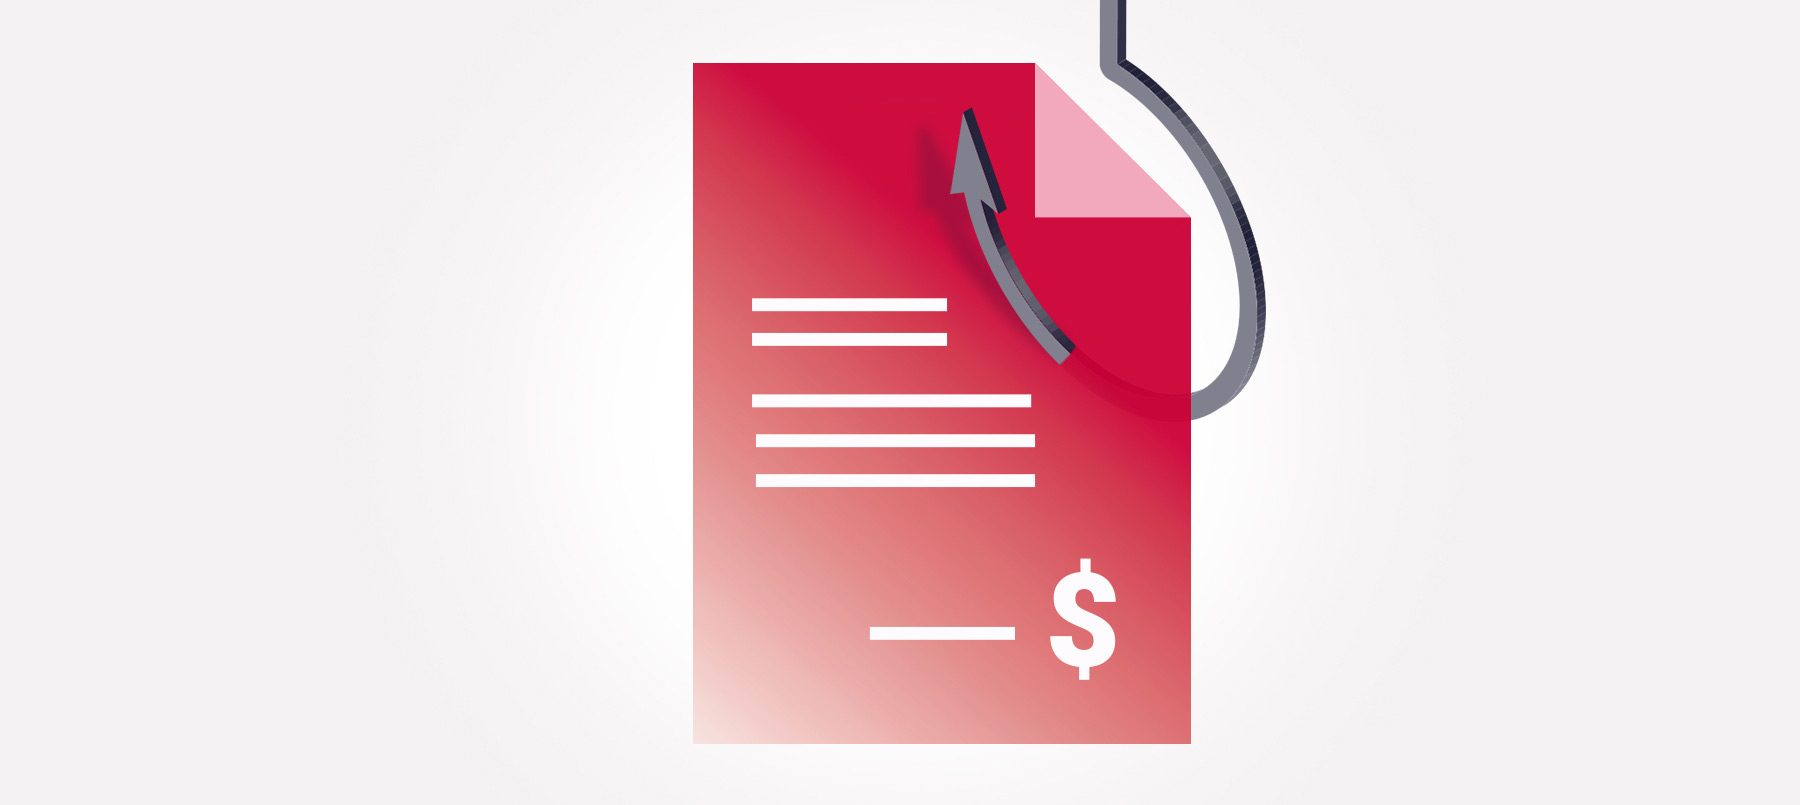 The PDF invoice that phished you